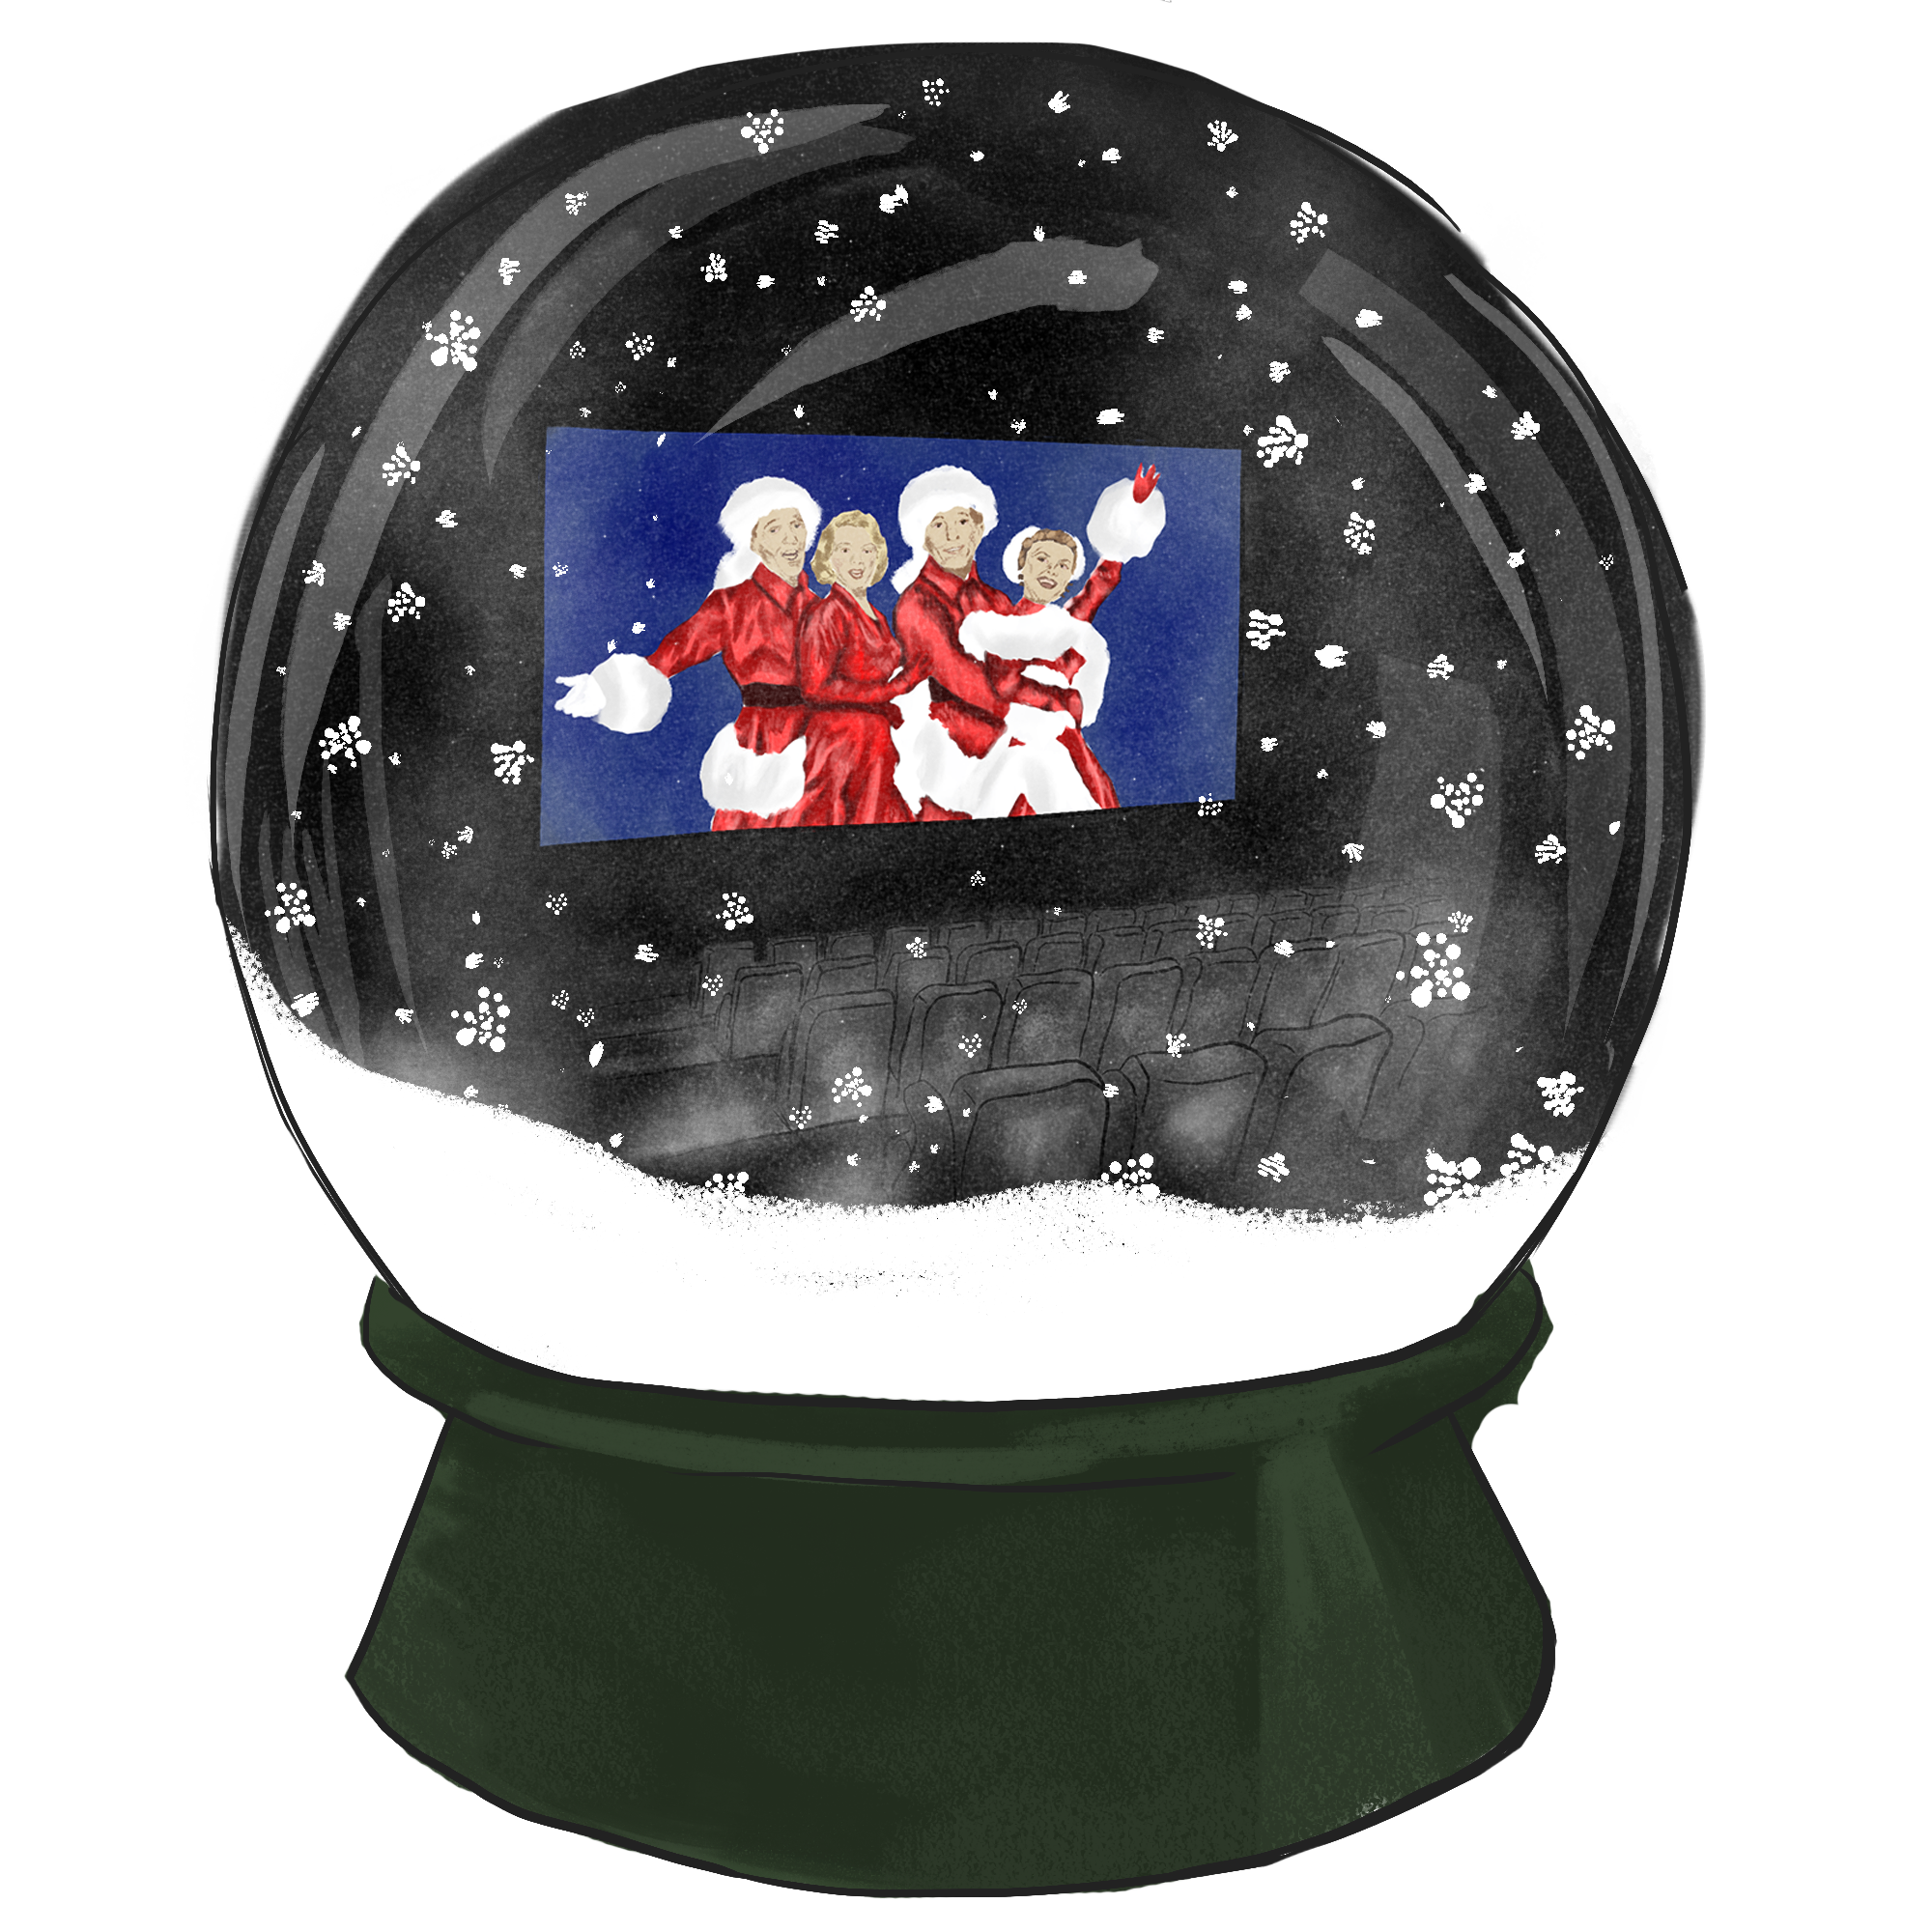 Snowglobe design for booklet cover.